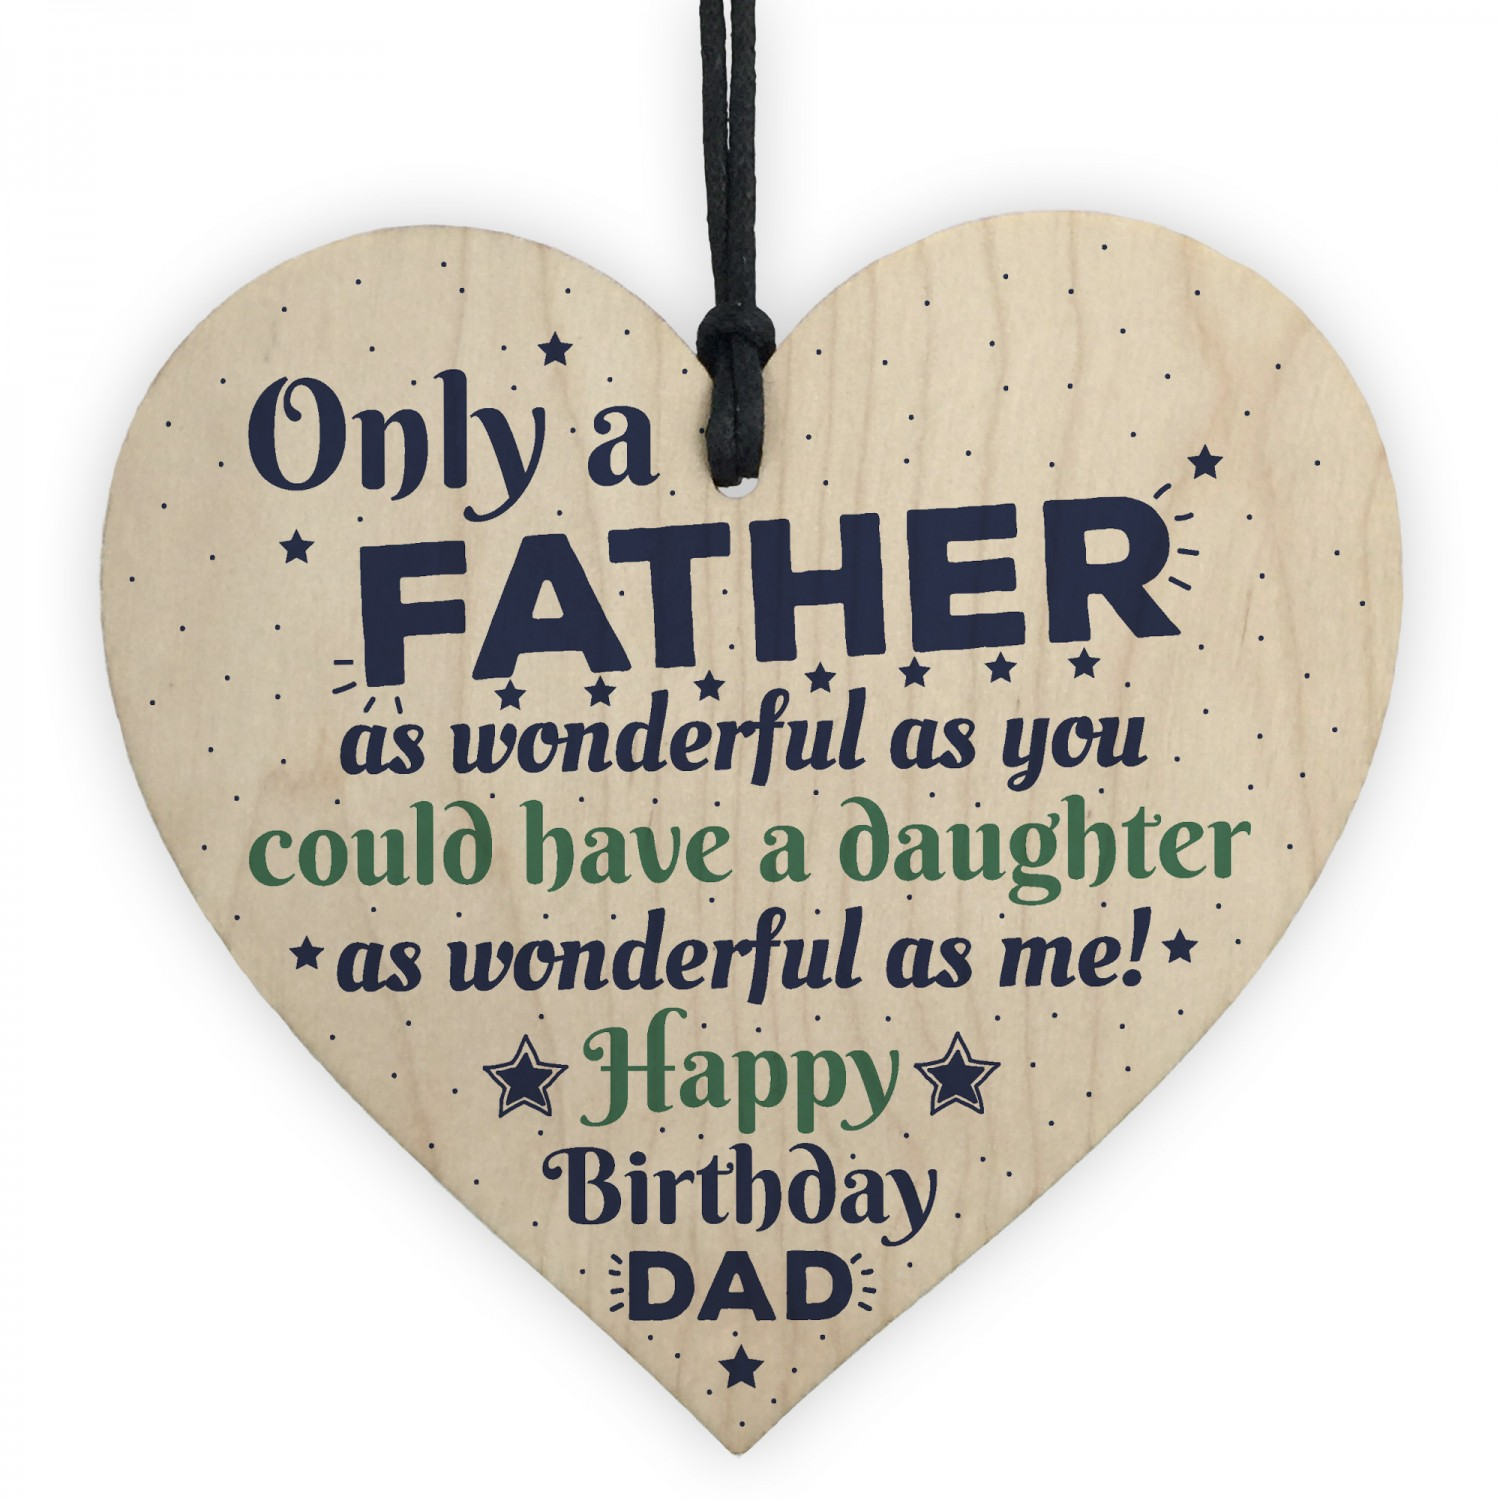 Funny Rude Dad Birthday Oak Wooden Heart Gift For Dad From Daughter Son Sign